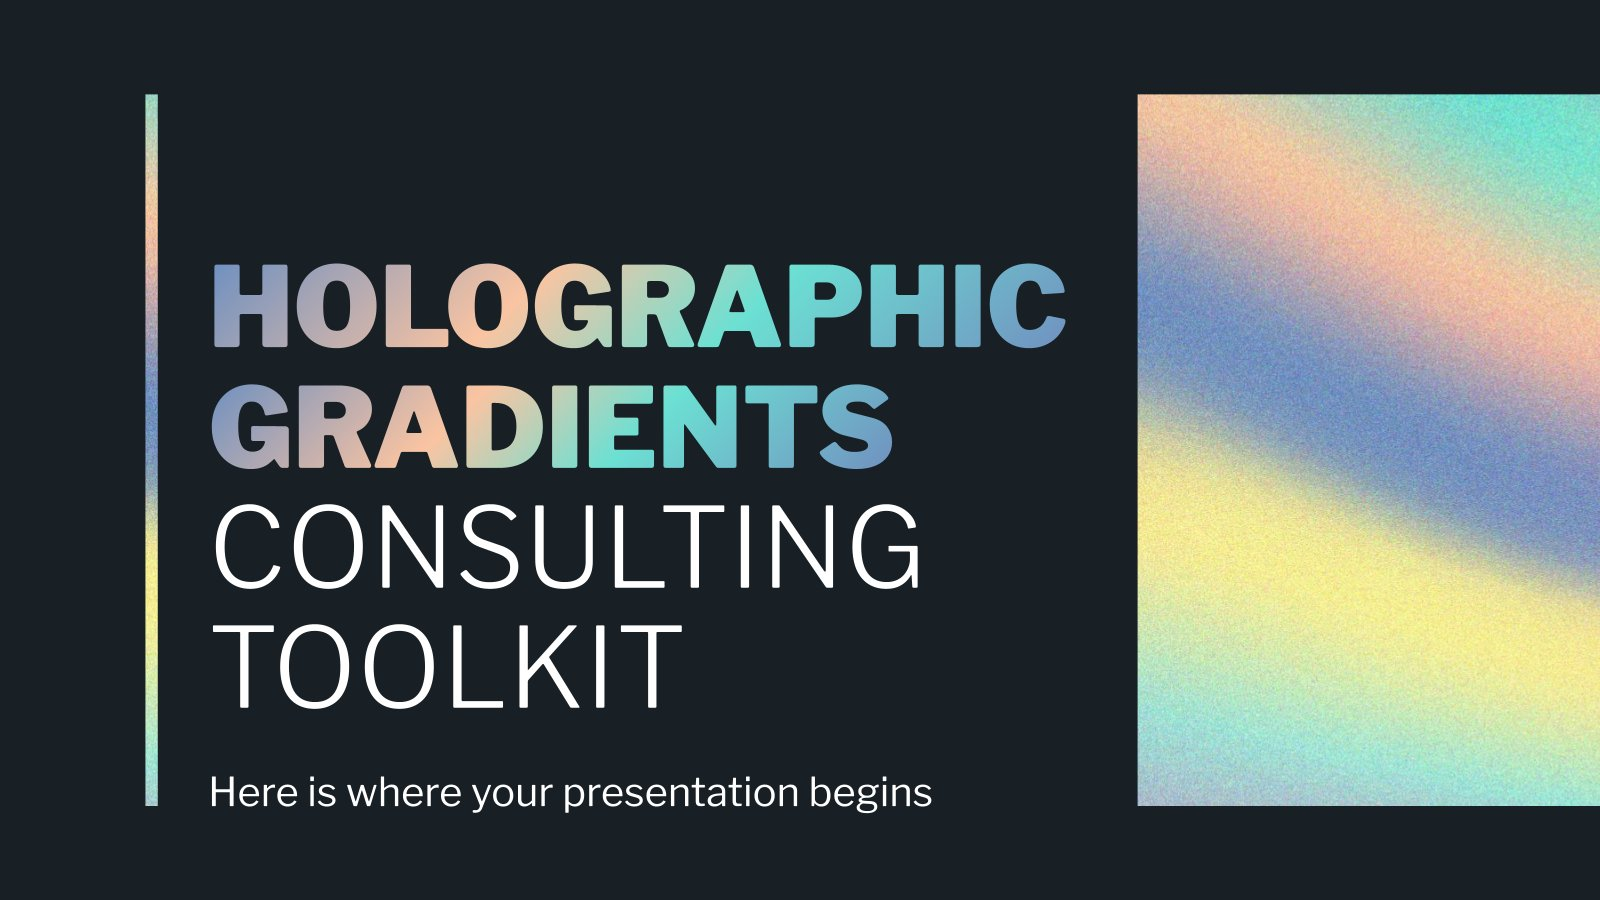 Holographic Gradients Consulting Toolkit presentation template